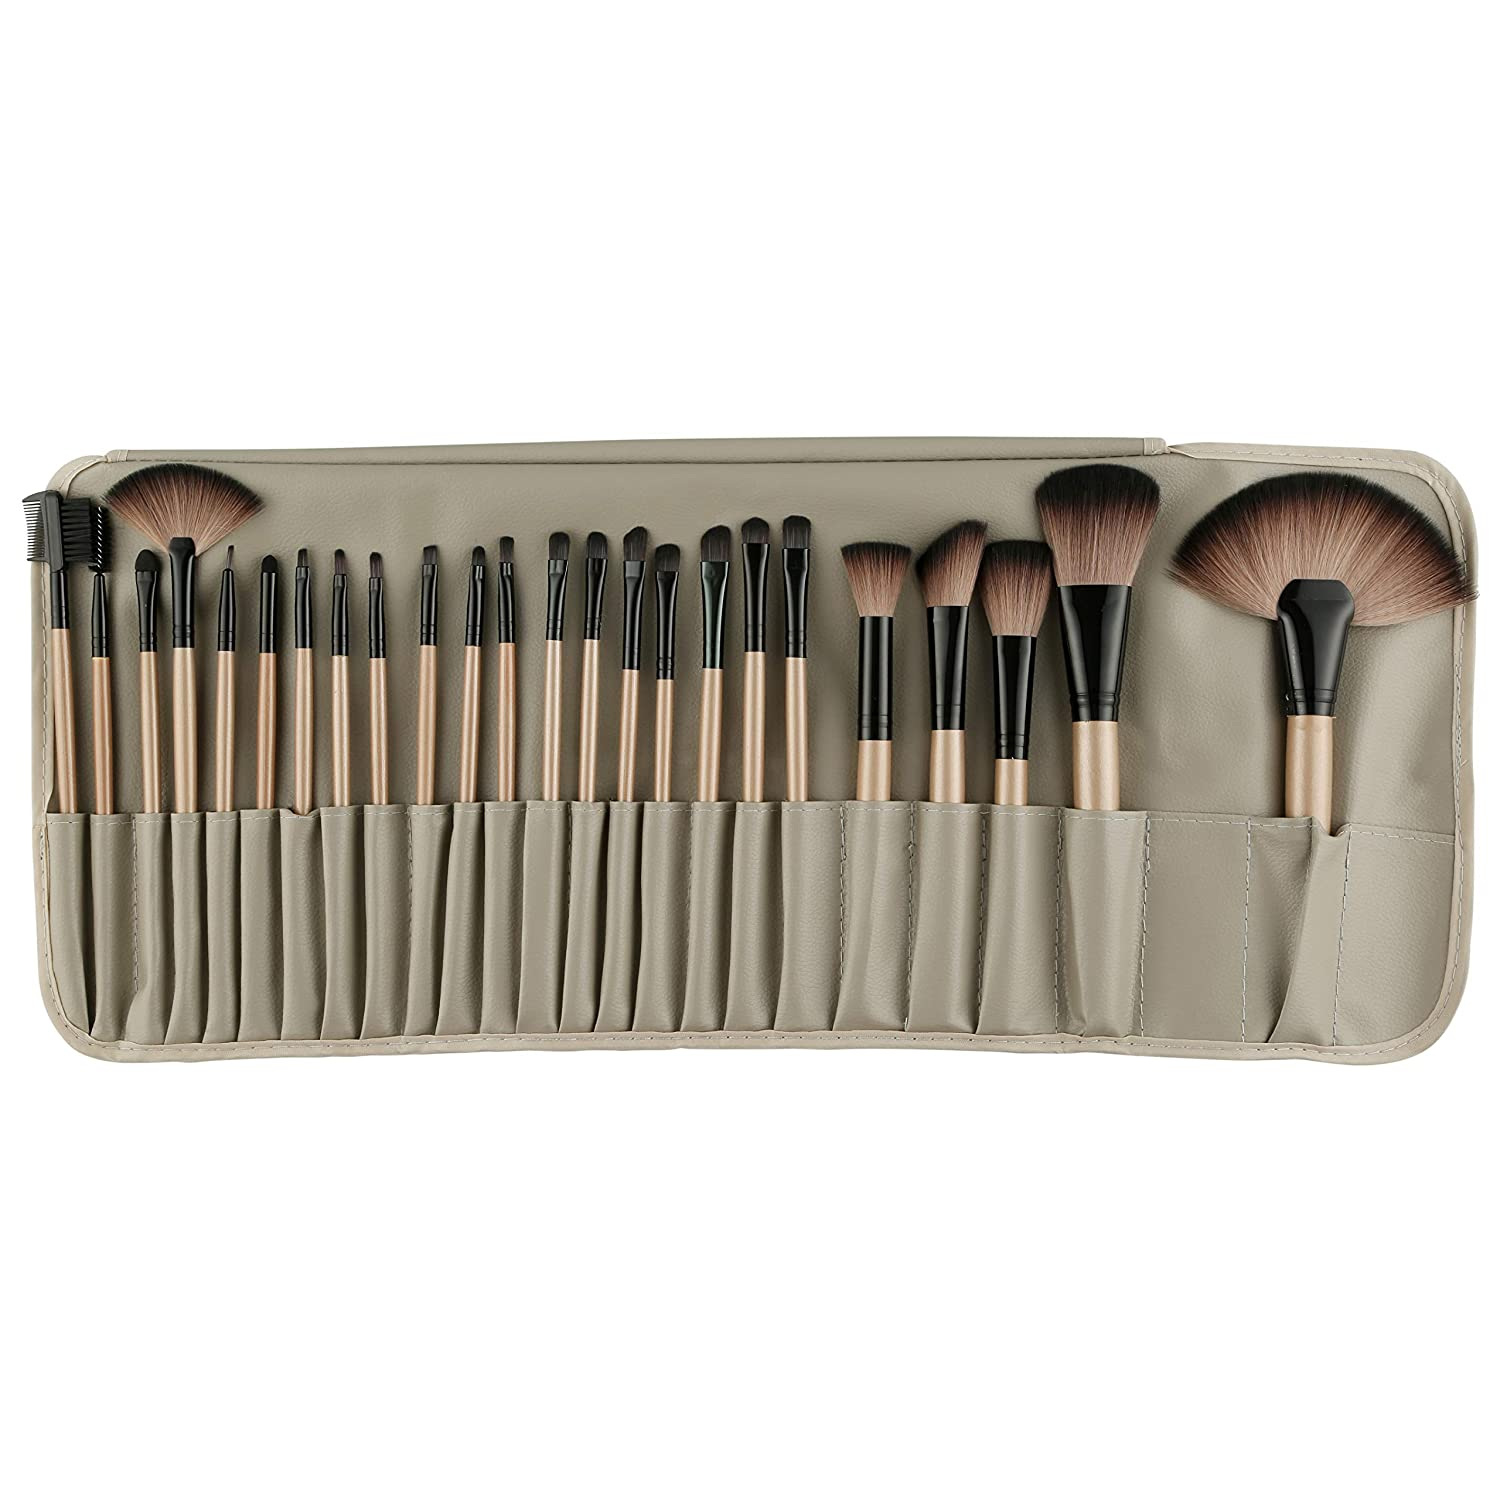 3). ROZIA 24pcs Makeup Brush Set, 24 Professional Makeup Brushes Kit Wooden Handle With Leather Pouch